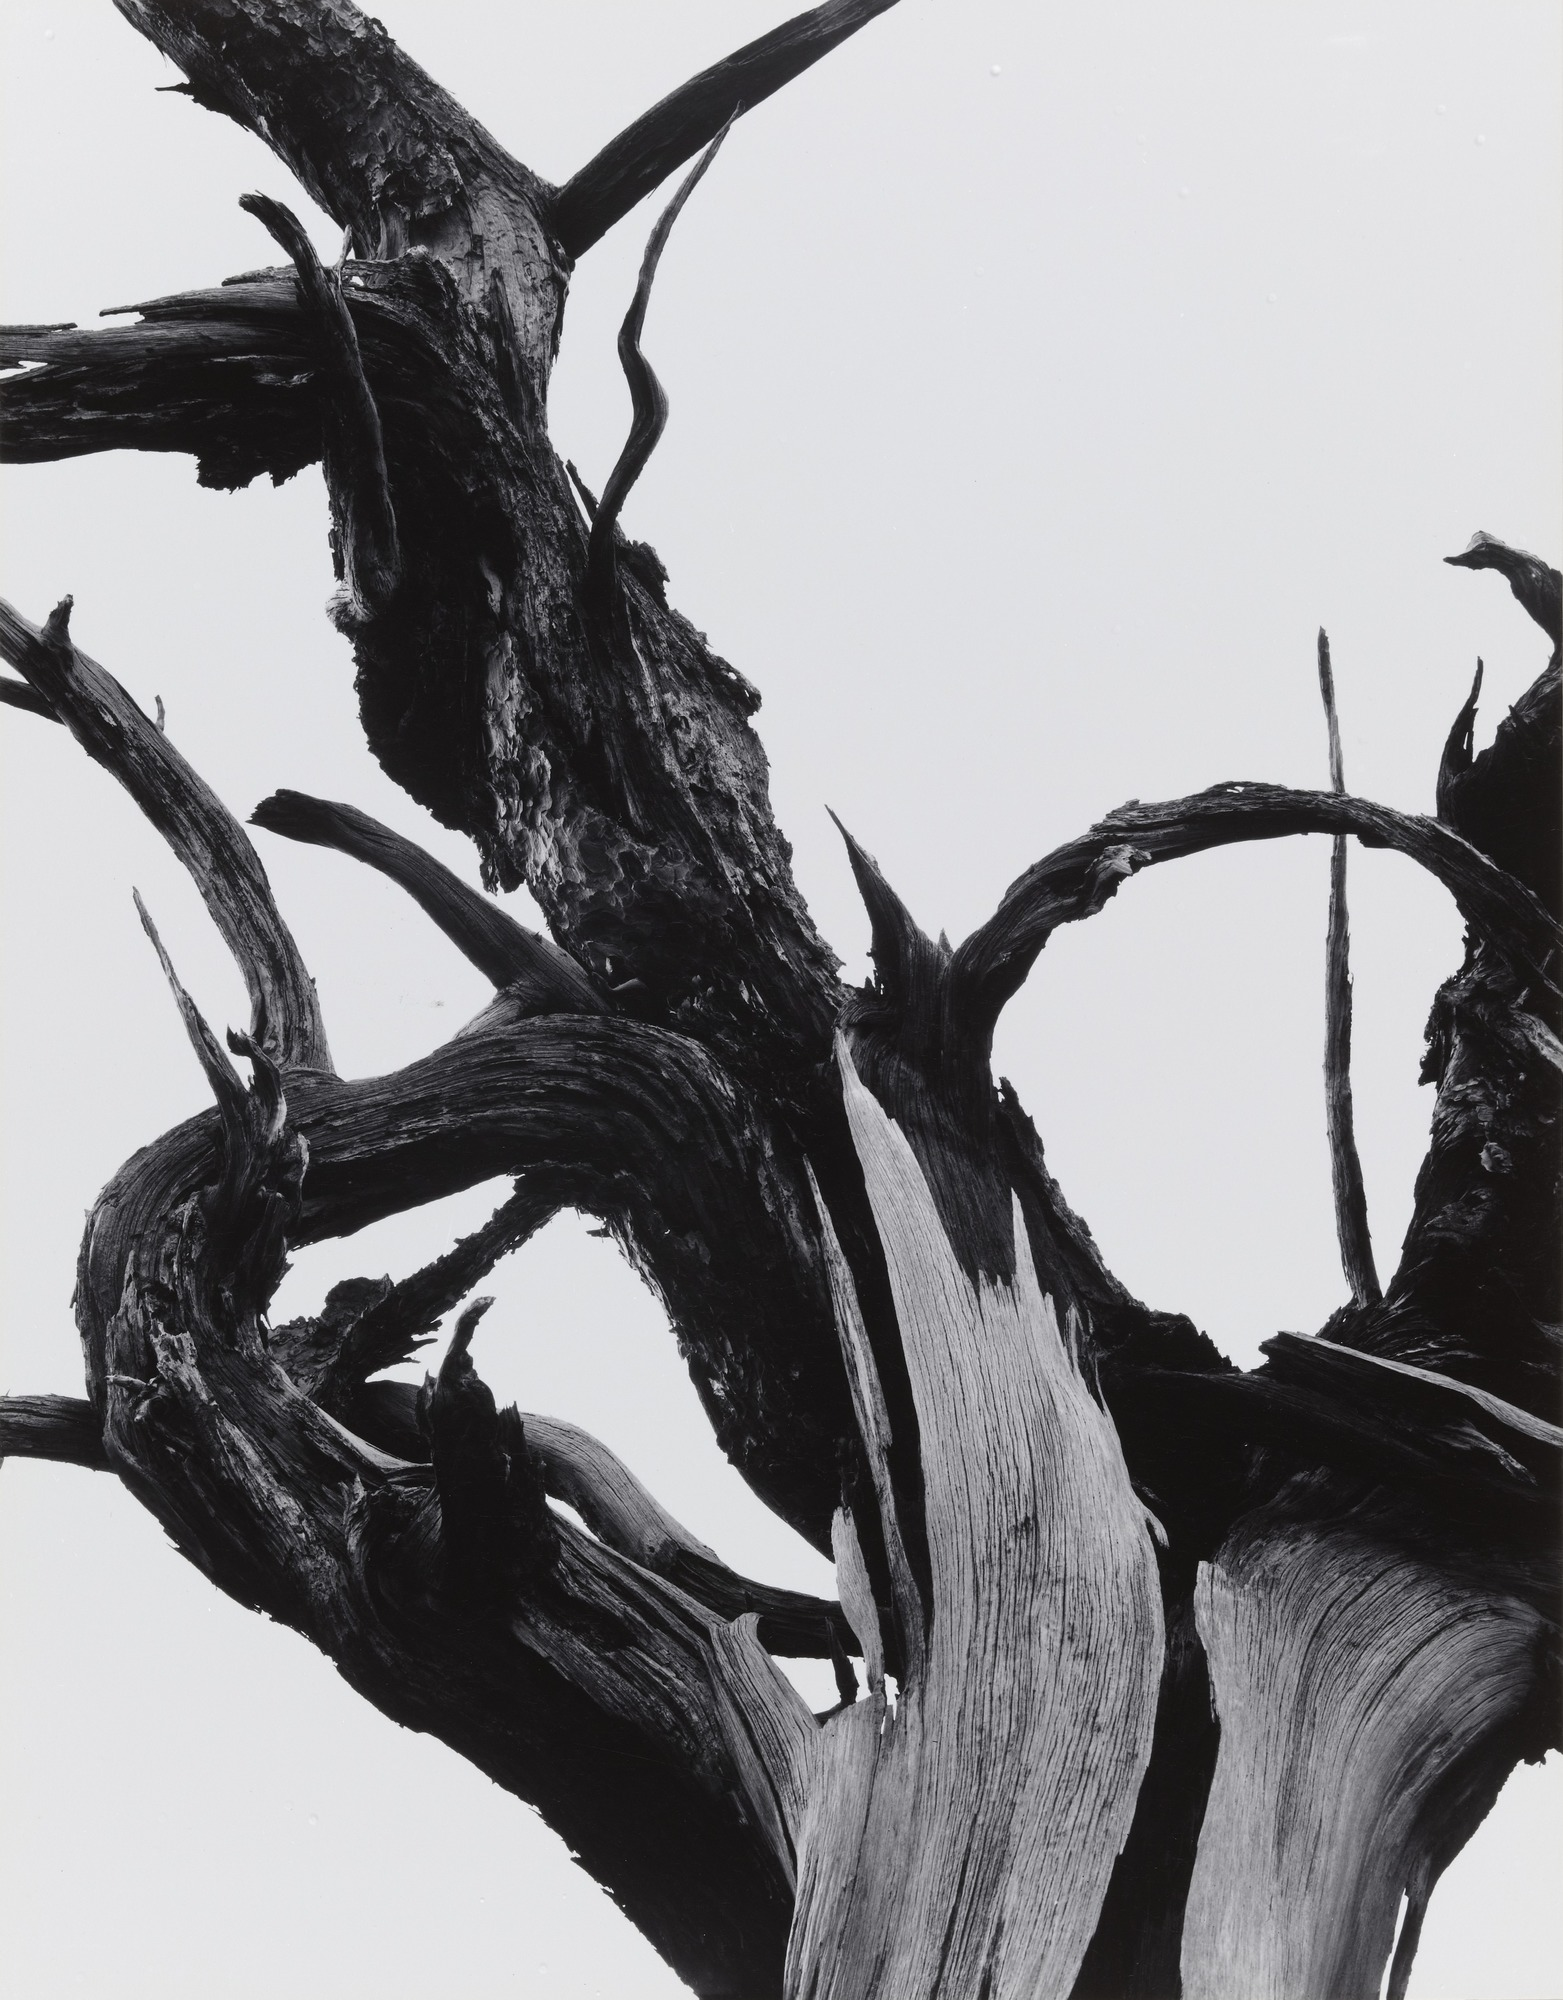 Ansel Adams / Dead Tree / Sunset Crater National Monument, Arizona / 1947